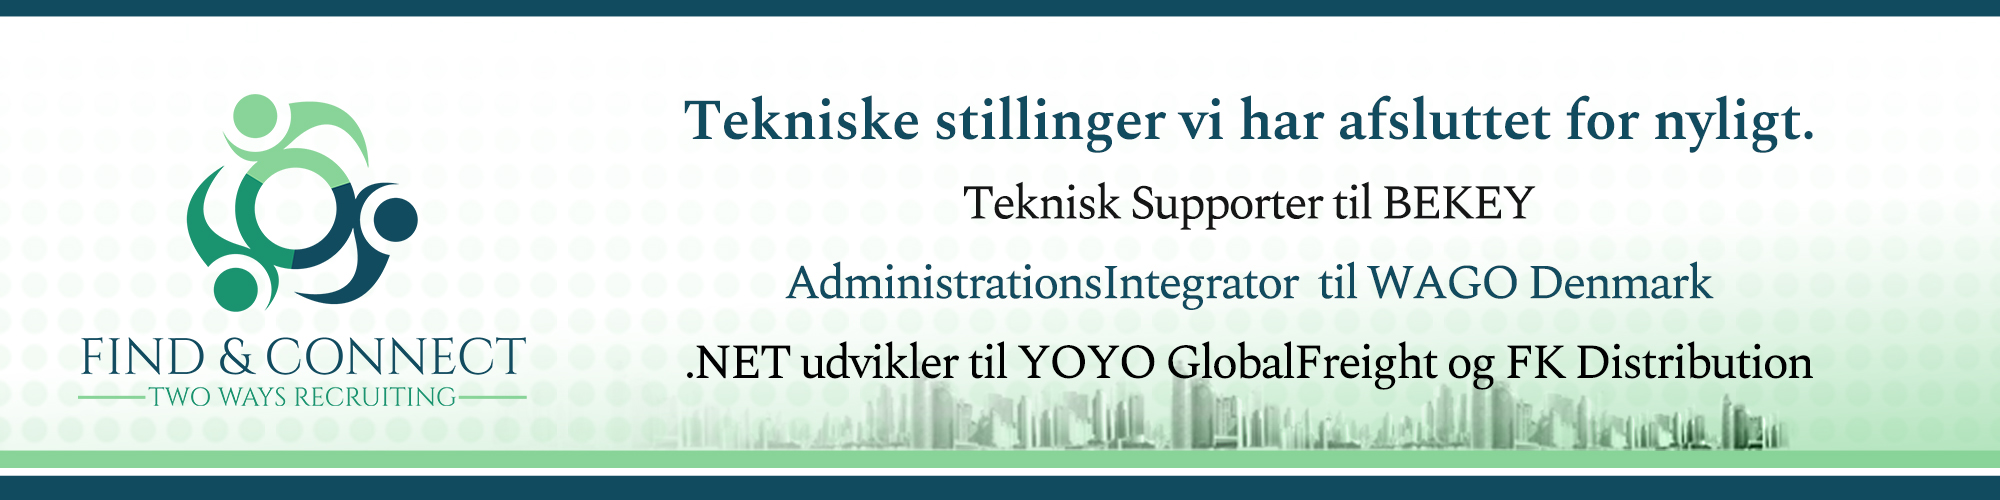 .NET udvikler, ApplikationsIntegrator, Teknisk Supporter